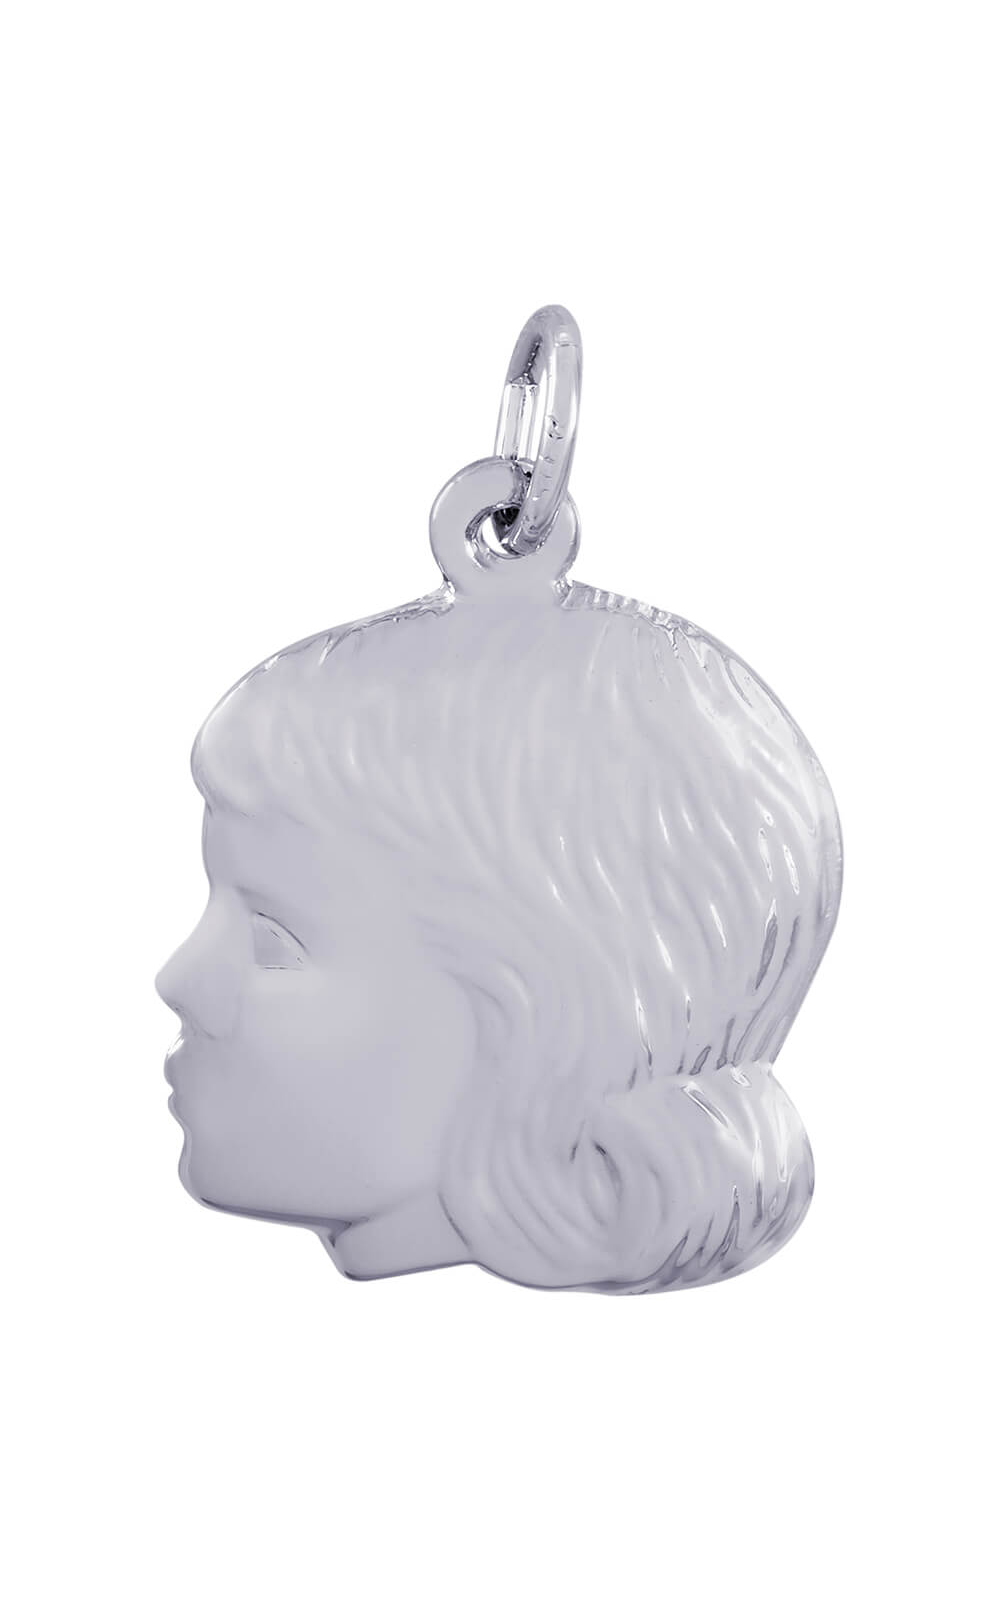 Rembrandt Charms Girl Charm 0512 product image